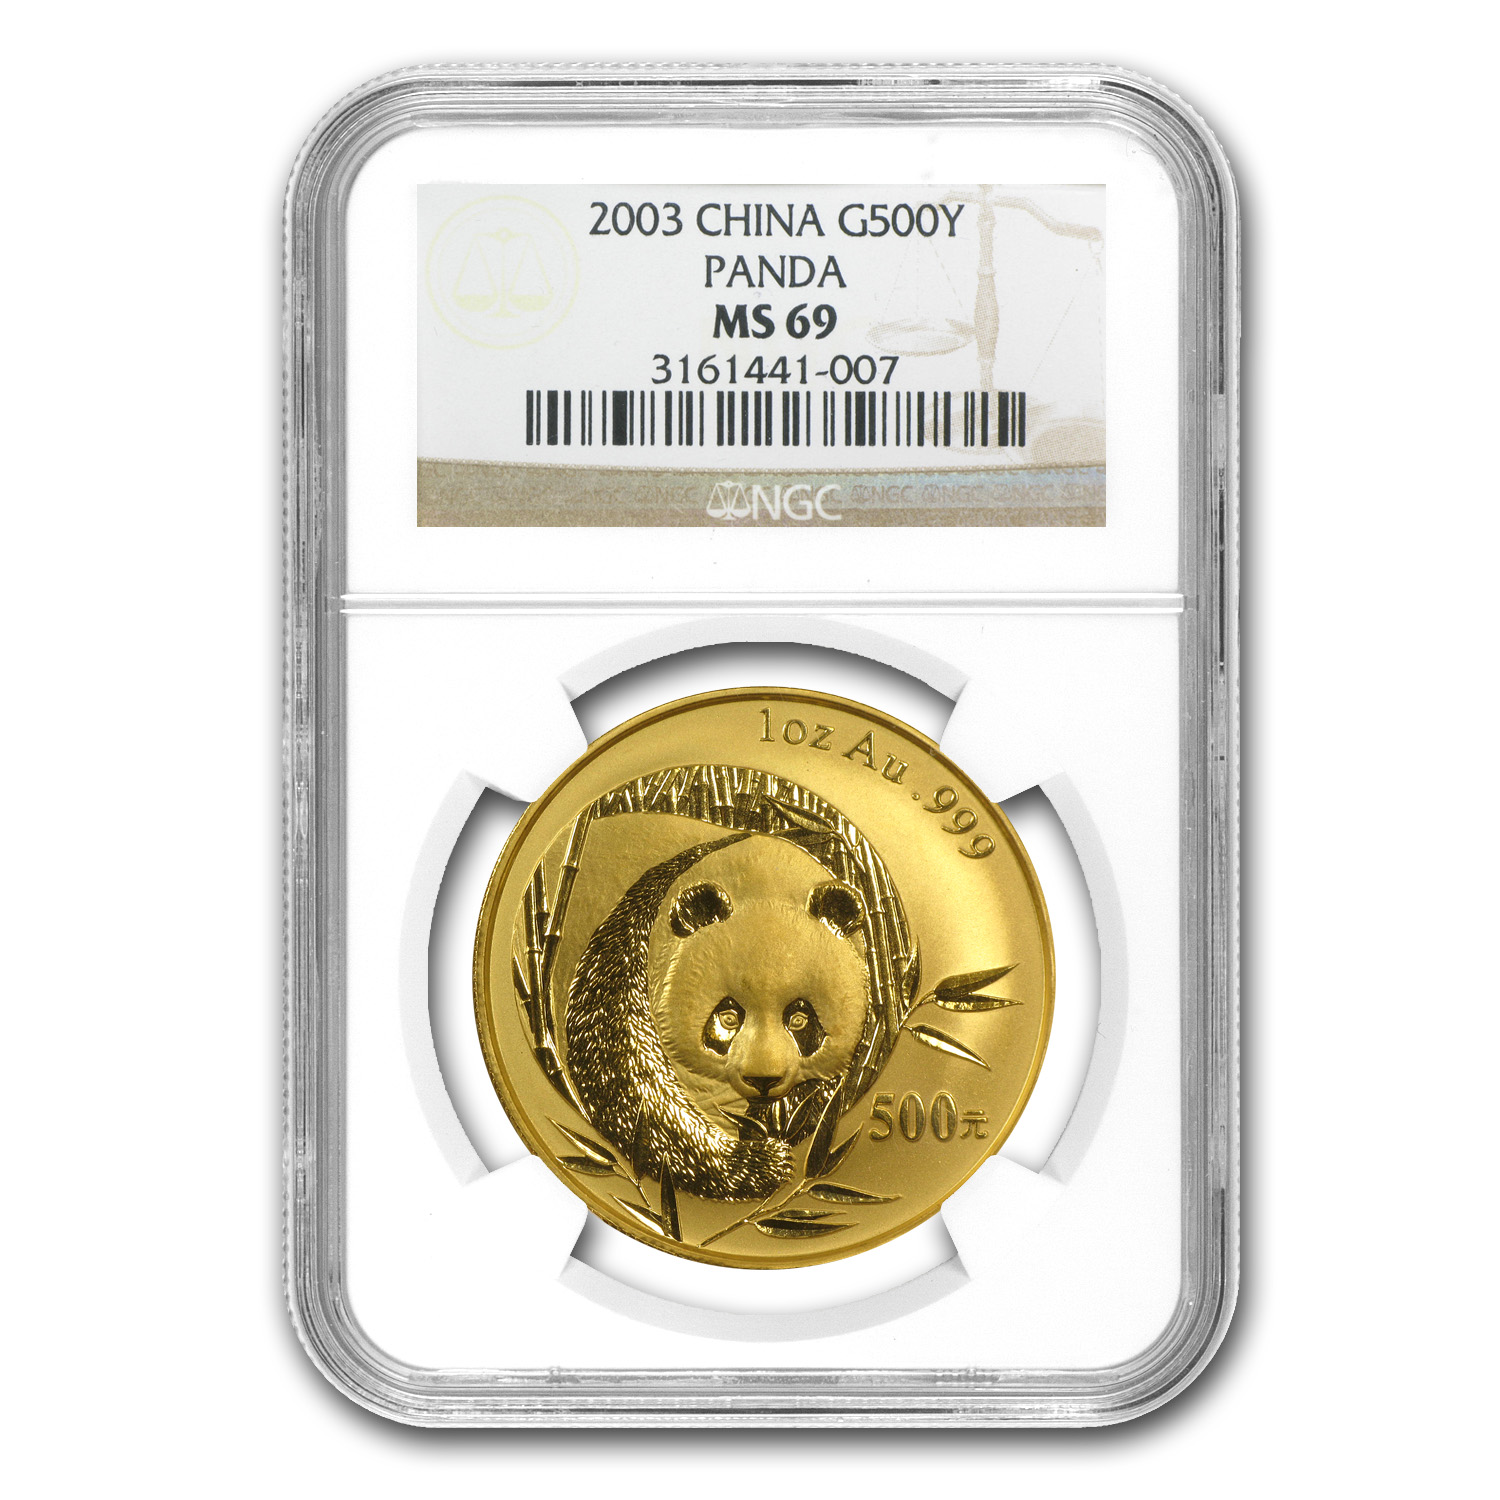 2003 China 1 oz Gold Panda MS-69 NGC